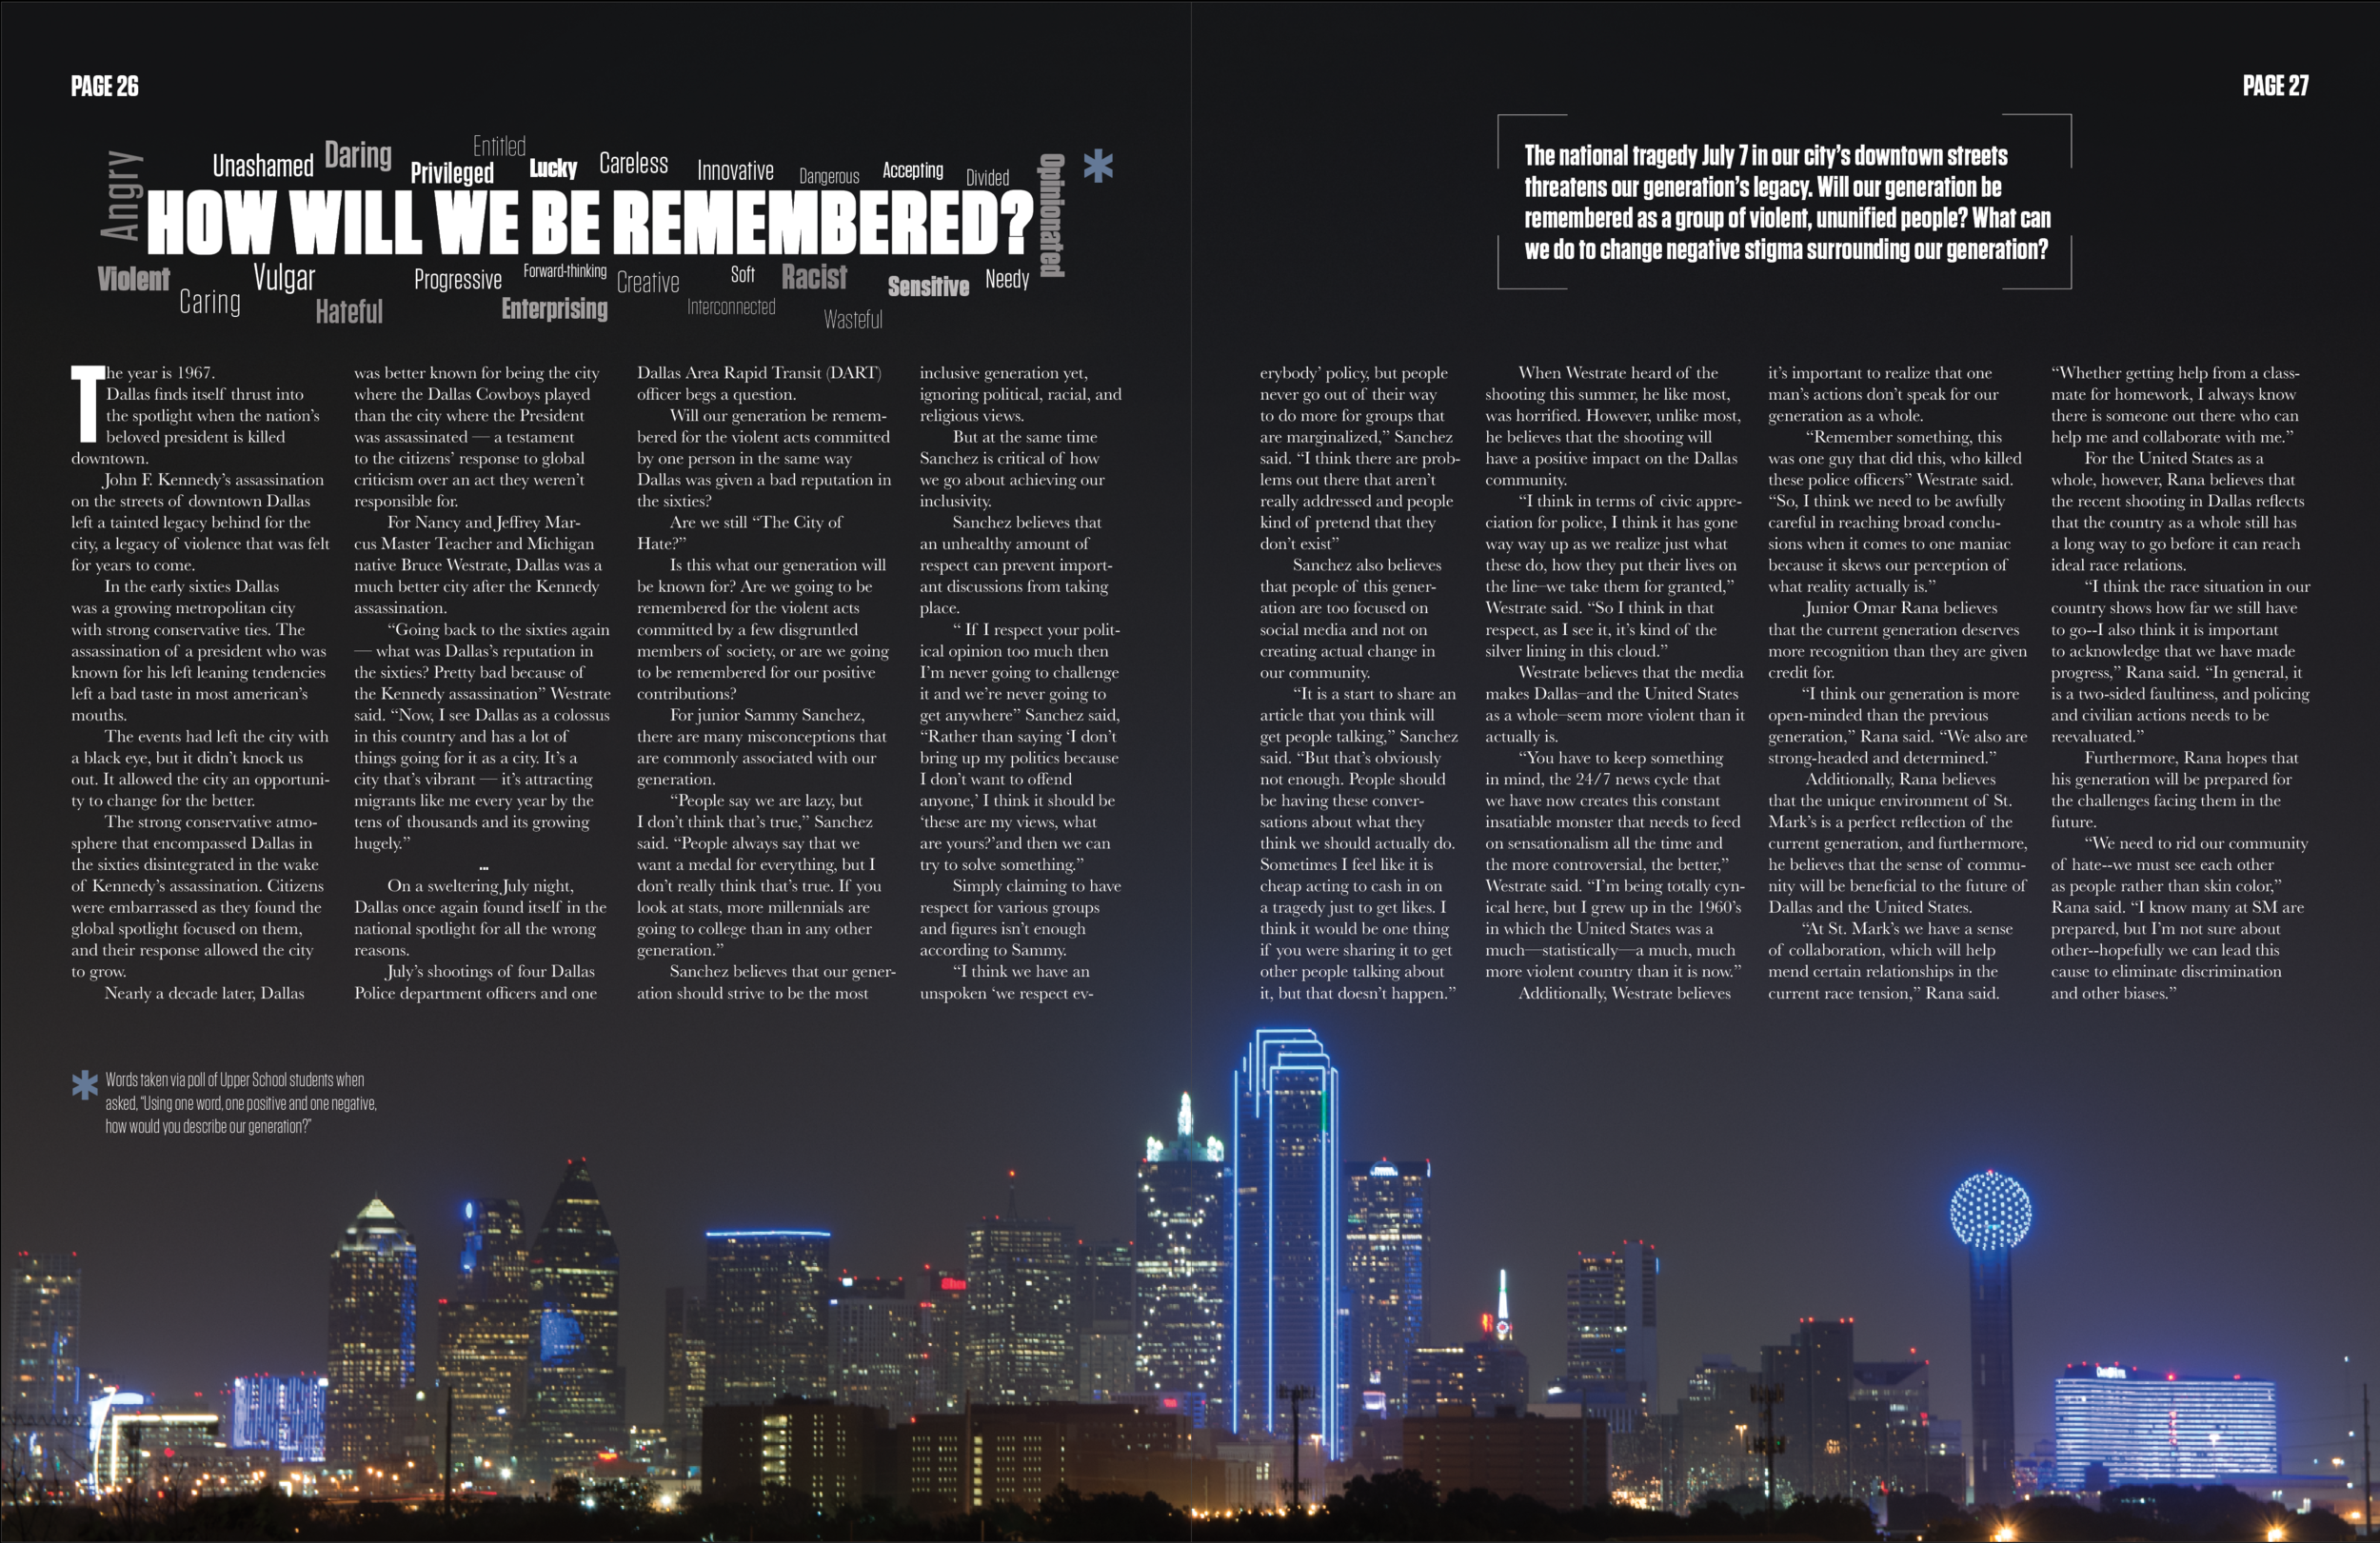 The photo of our skyline lit in blue after the shootings shows just how deeply our city felt the impact of the shootings. Because of this, the photo felt like the perfect way to finish the 28-page magazine.